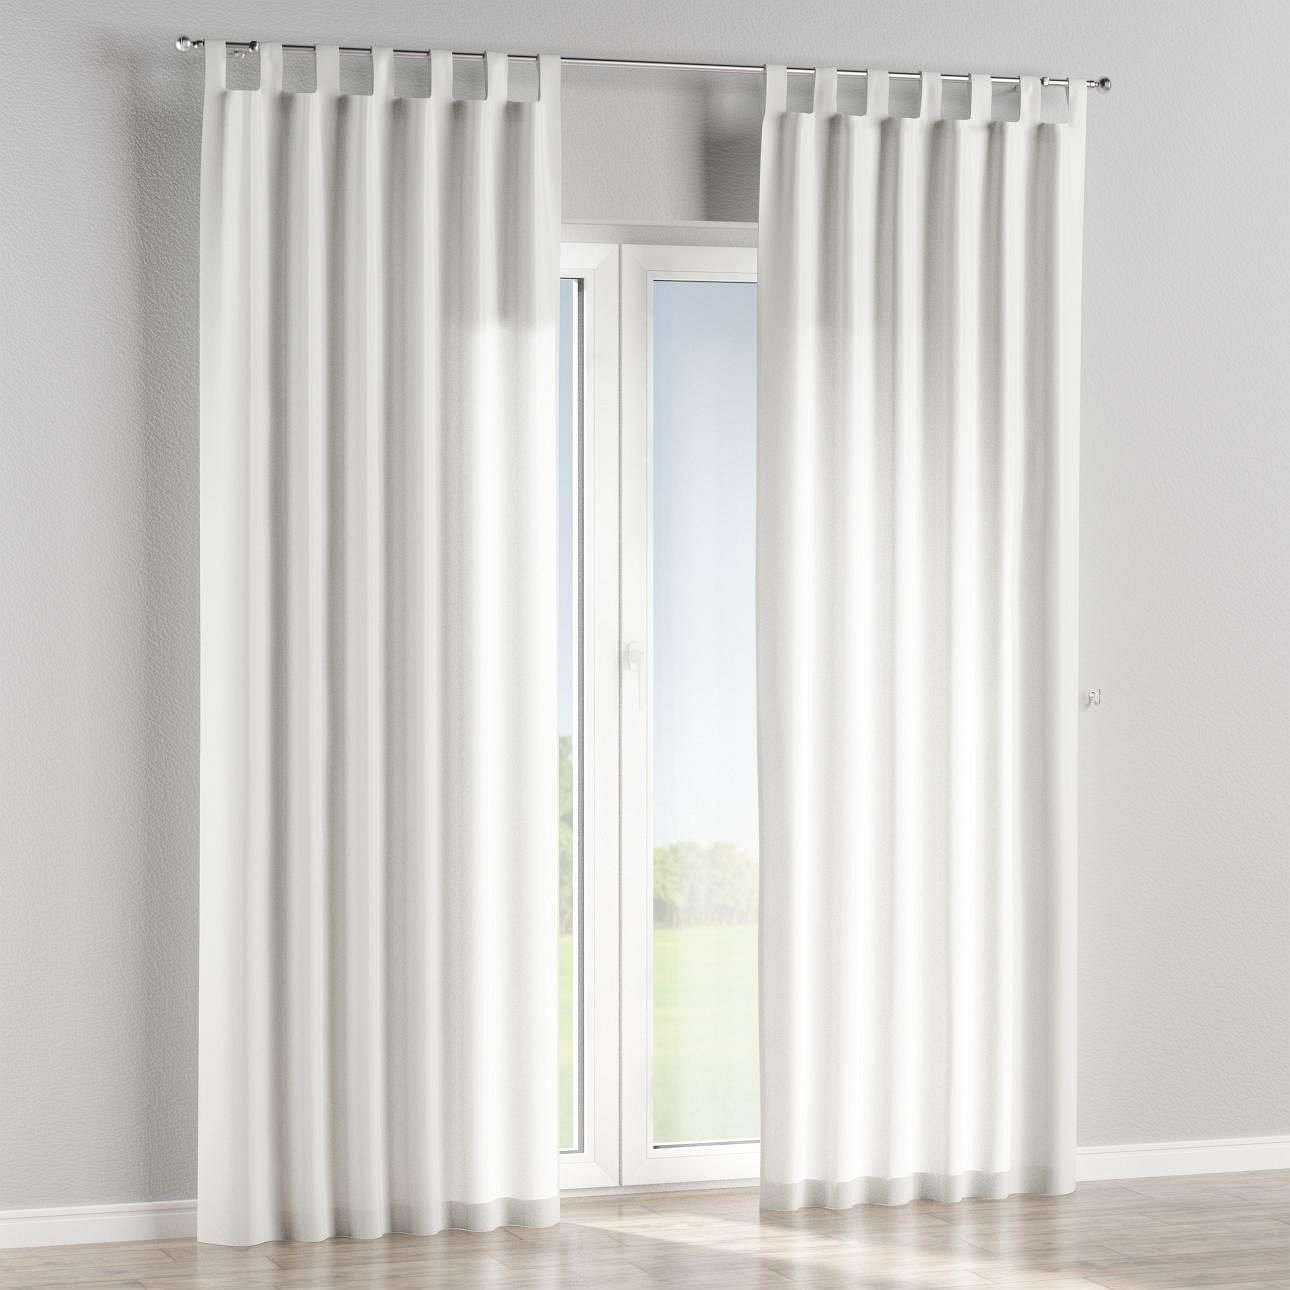 Tab top curtains in collection Norge, fabric: 150-19